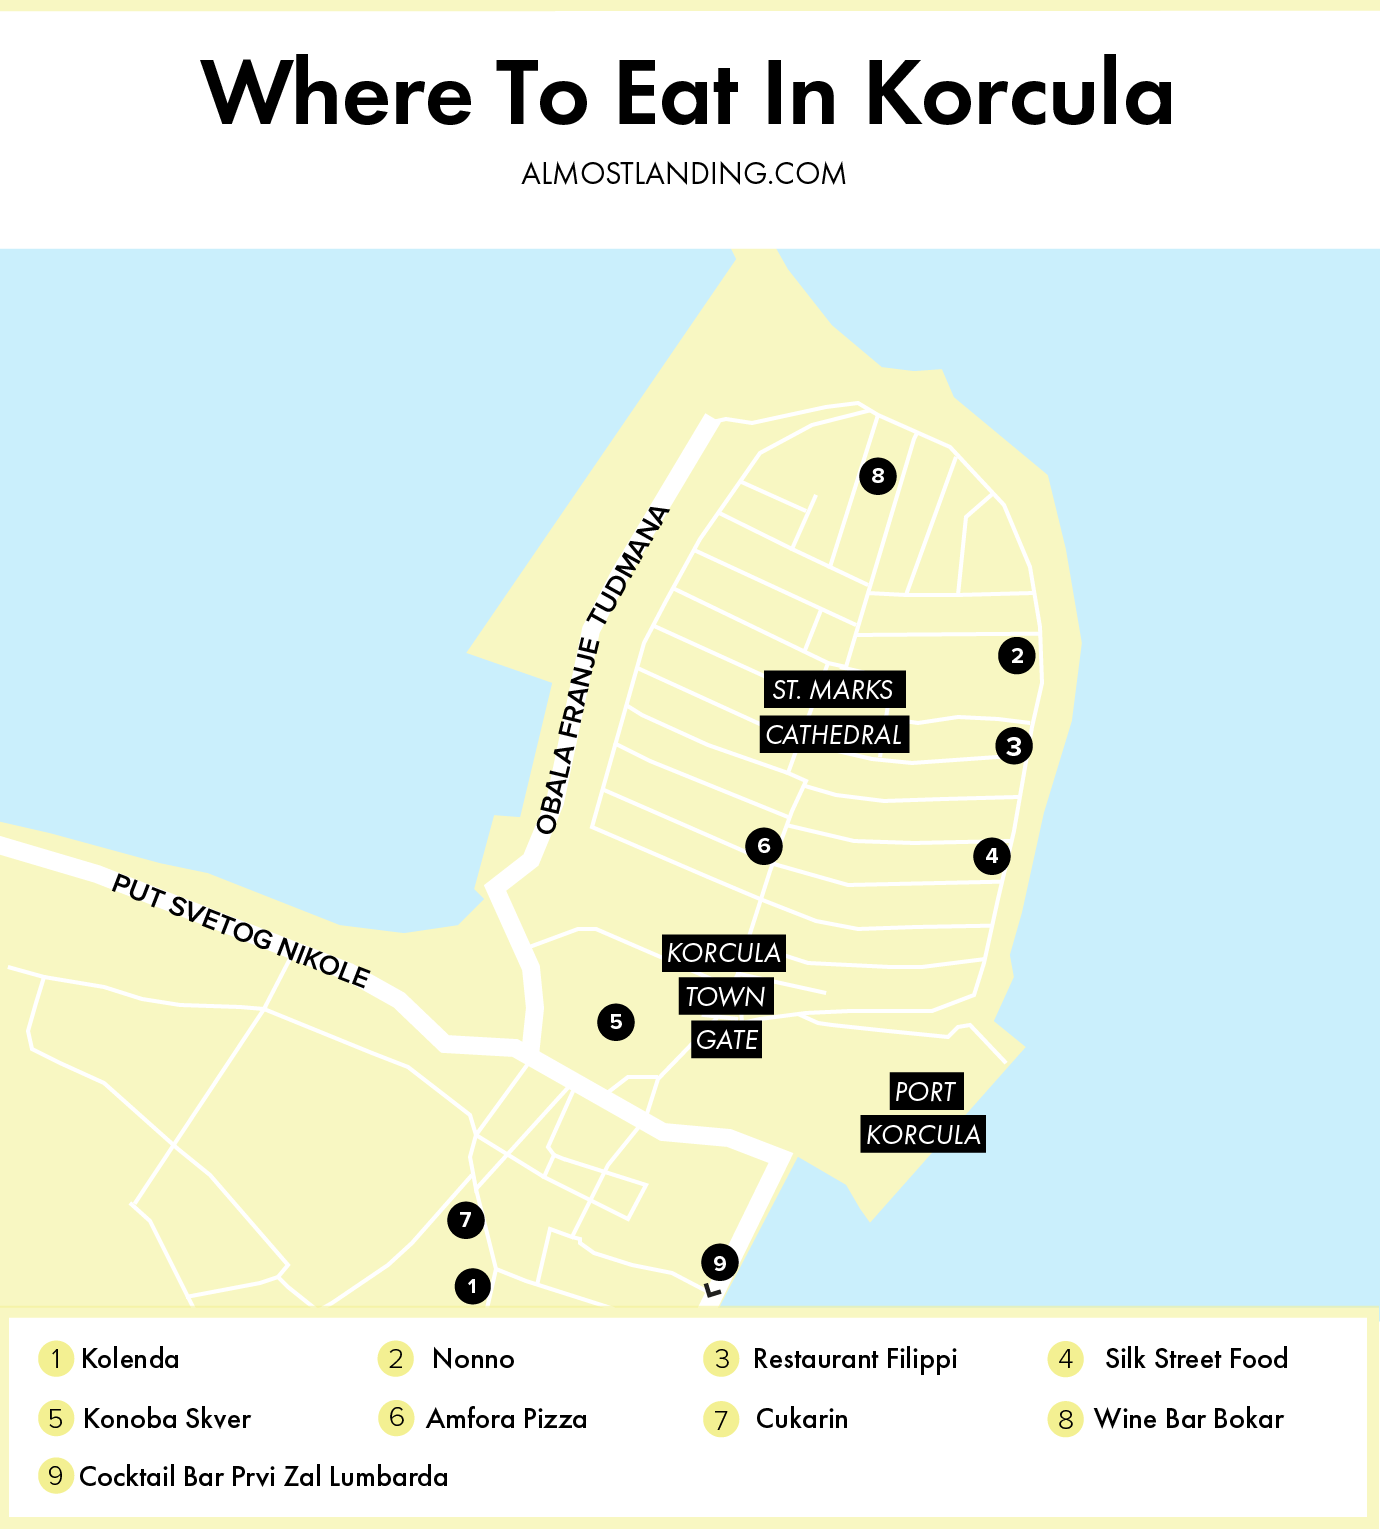 Where To Eat In Korcula Croatia Map